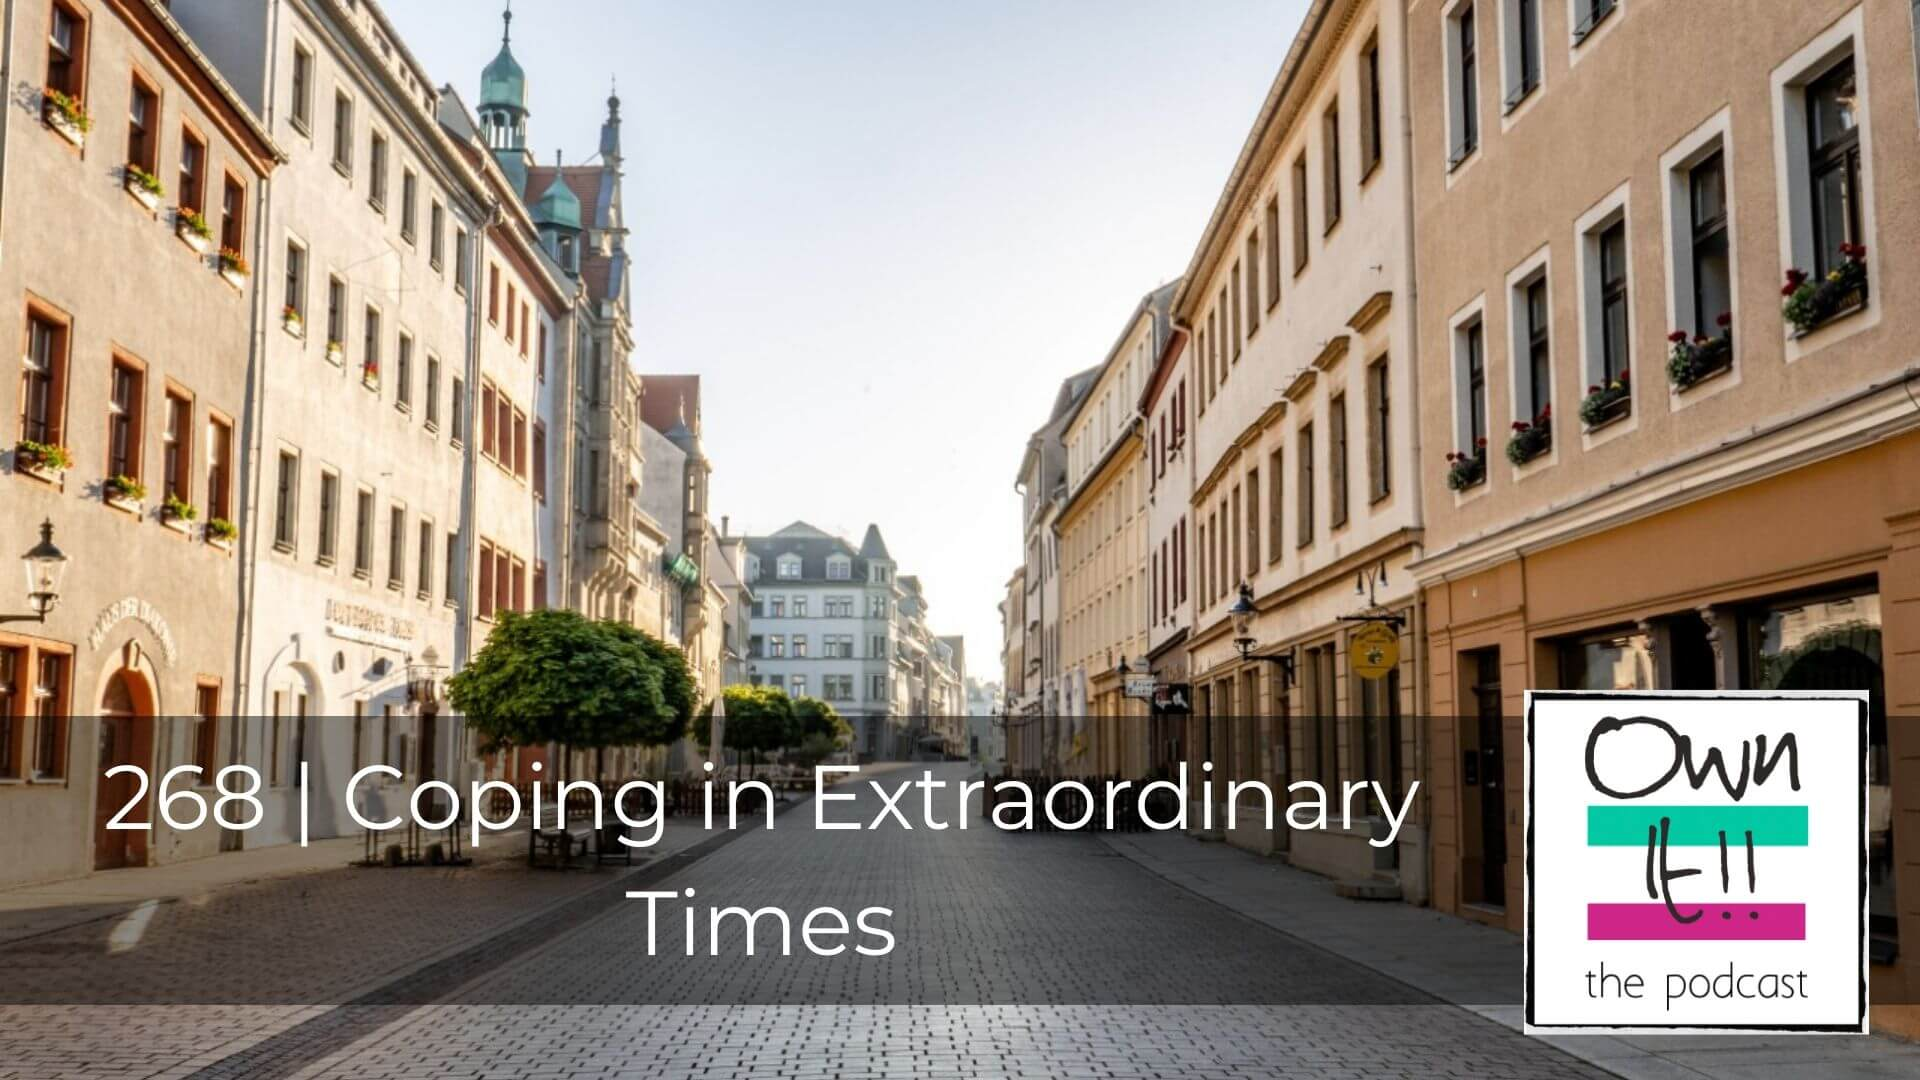 Own It! 268 | Coping in Extraordinary Times